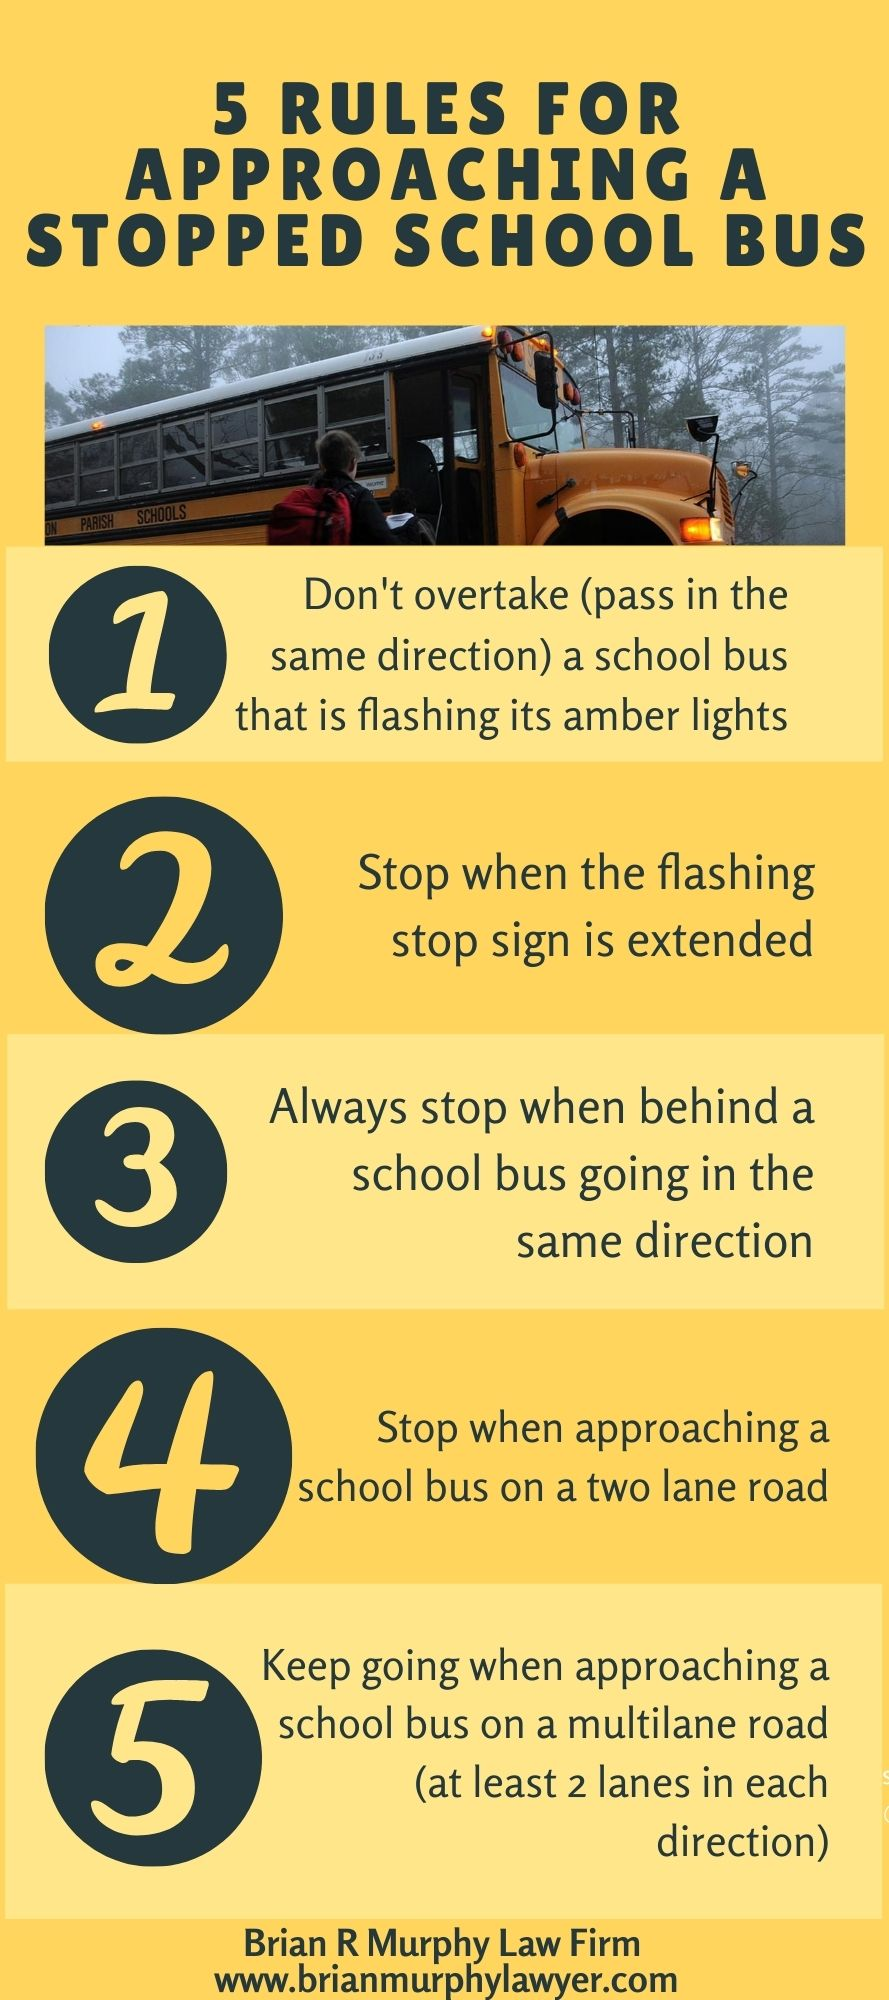 5 Rules Infographic